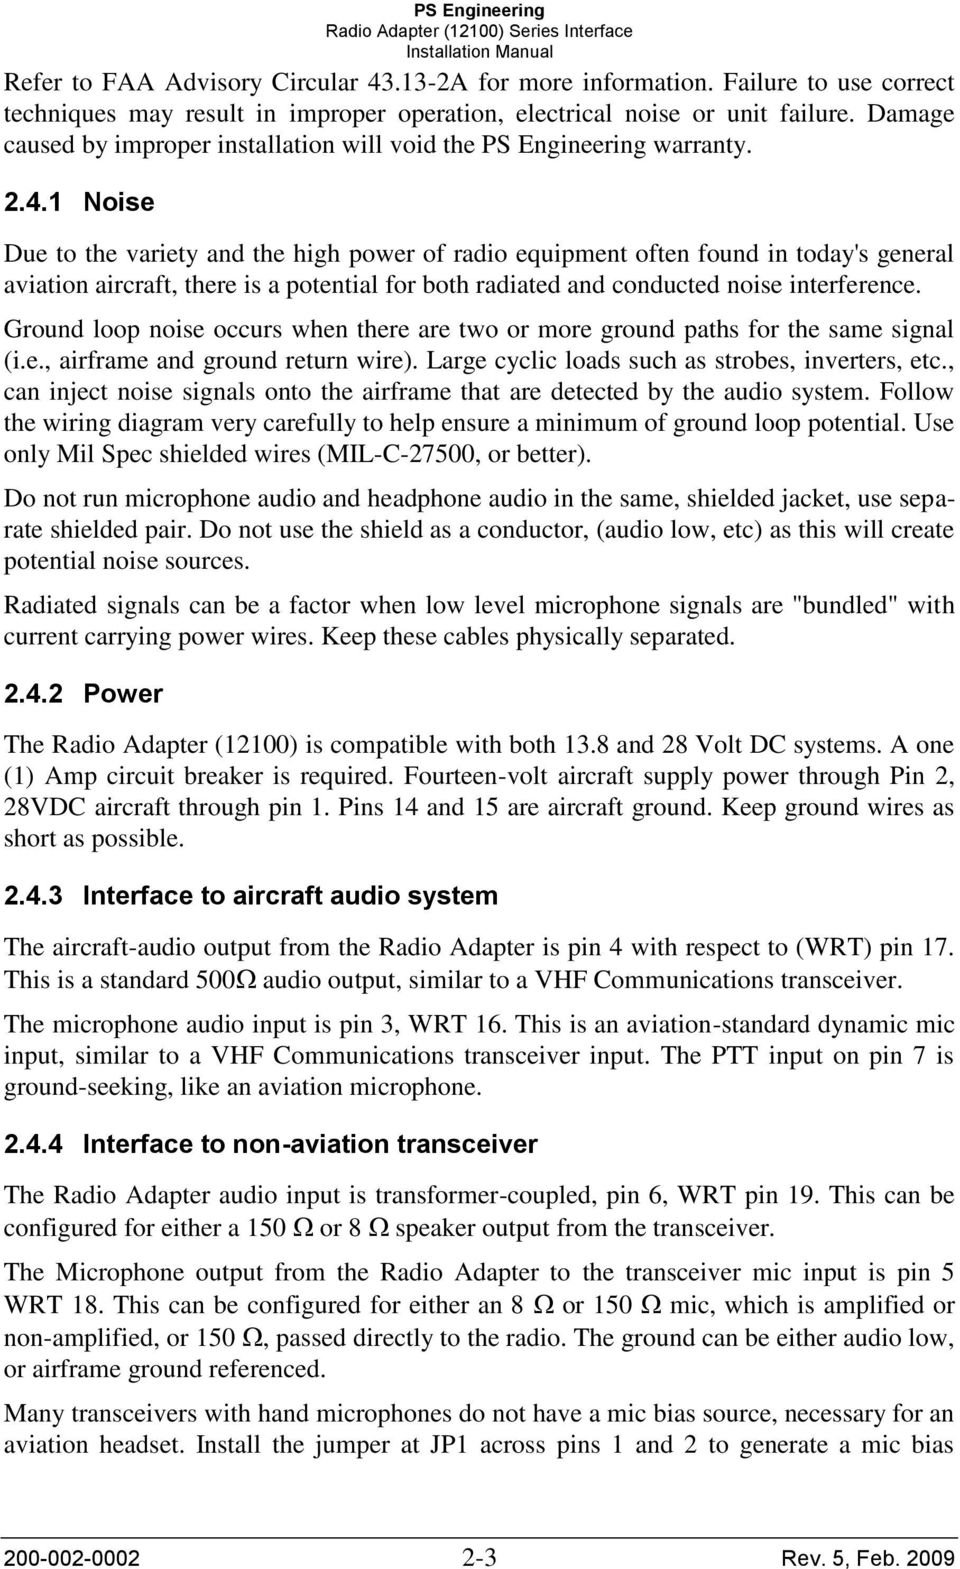 Tactical Radio Adapter Pdf Dynamic Microphone Wiring Diagram 1 Noise Due To The Variety And High Power Of Equipment Often Found In